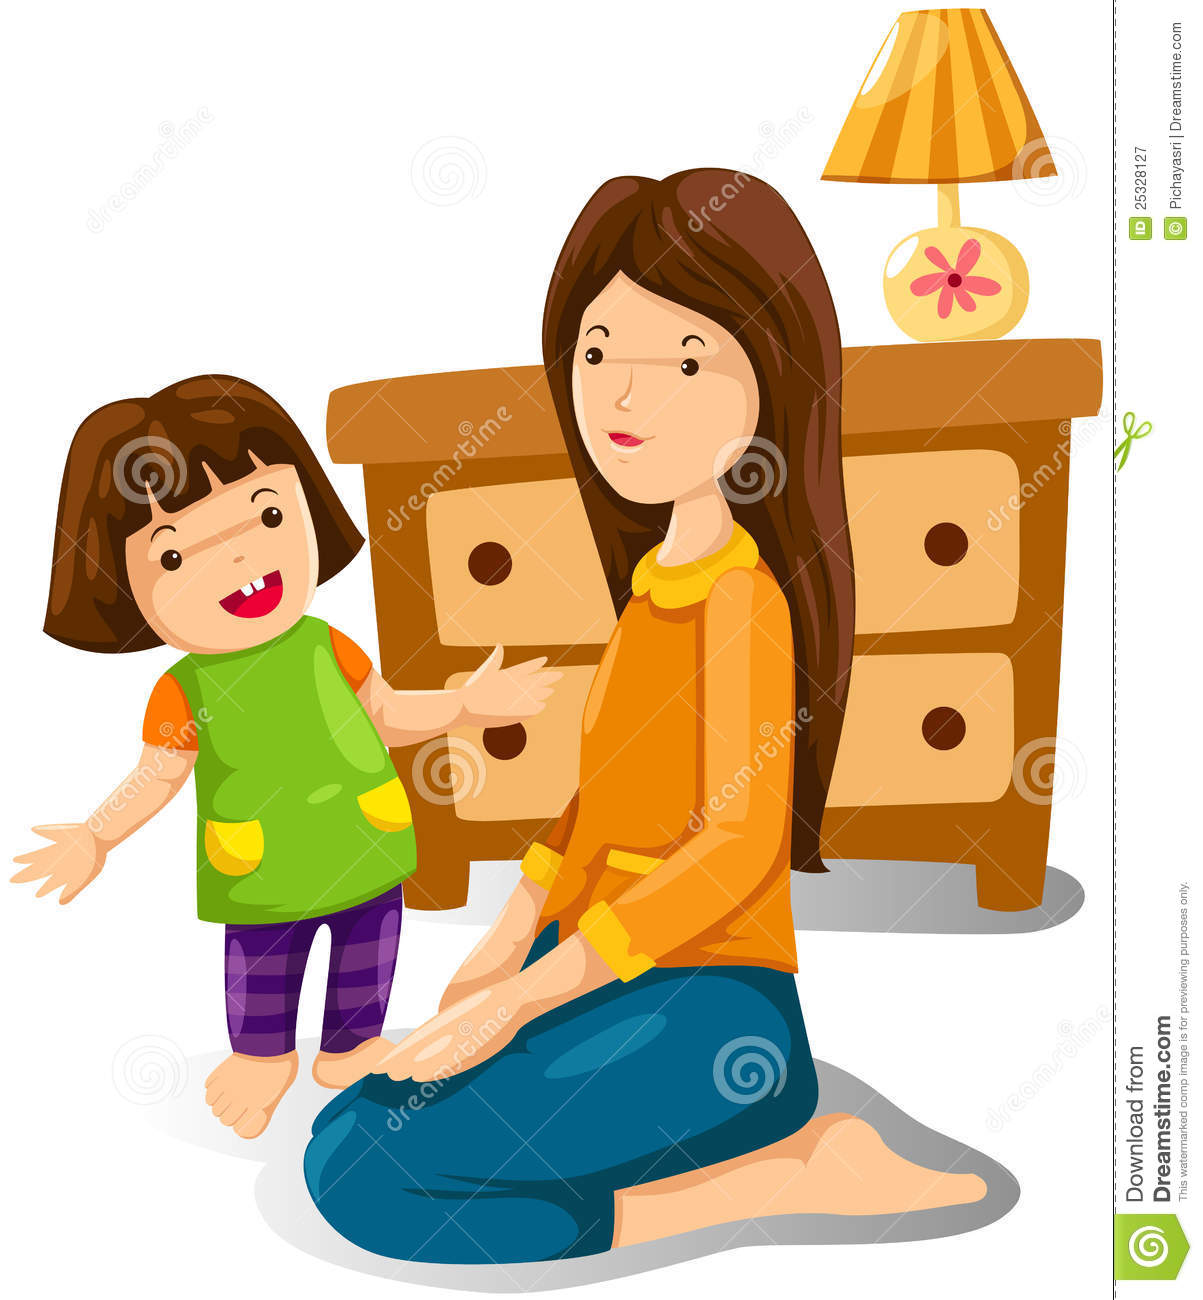 listen to a talk_Mother And Daughter Royalty Free Stock Photography - Image: 25328127